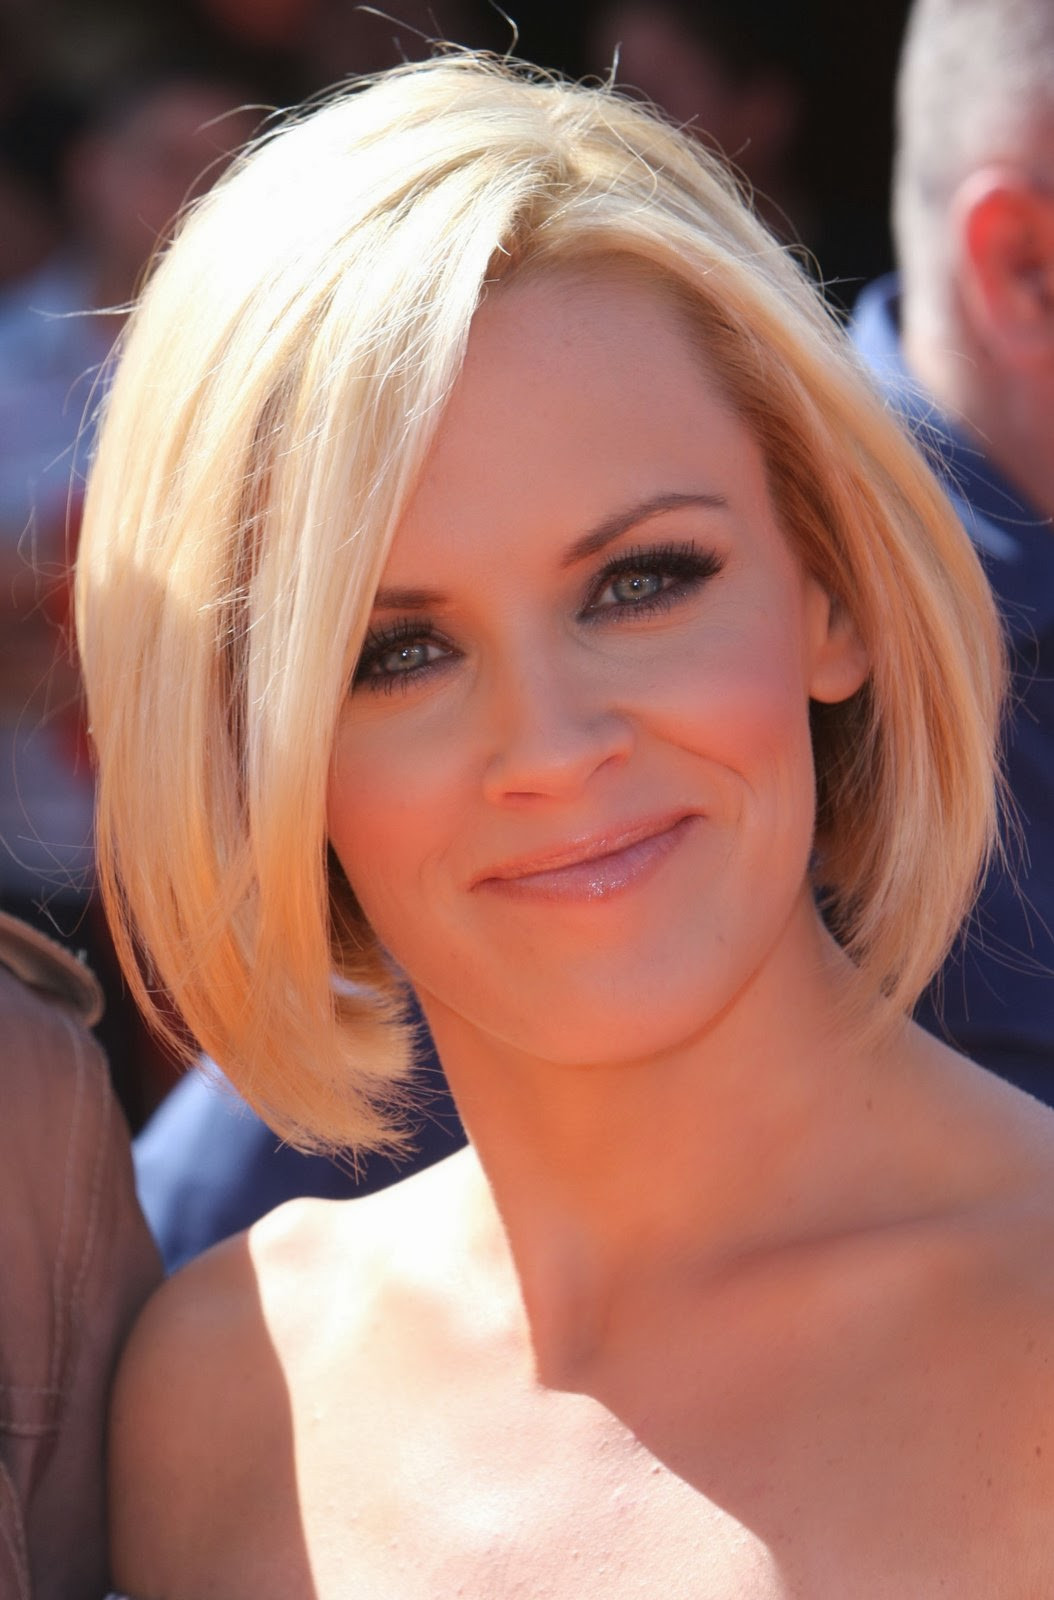 Best ideas about A Bob Hairstyle . Save or Pin The Most Popular Bob Hairstyles 2014 Now.